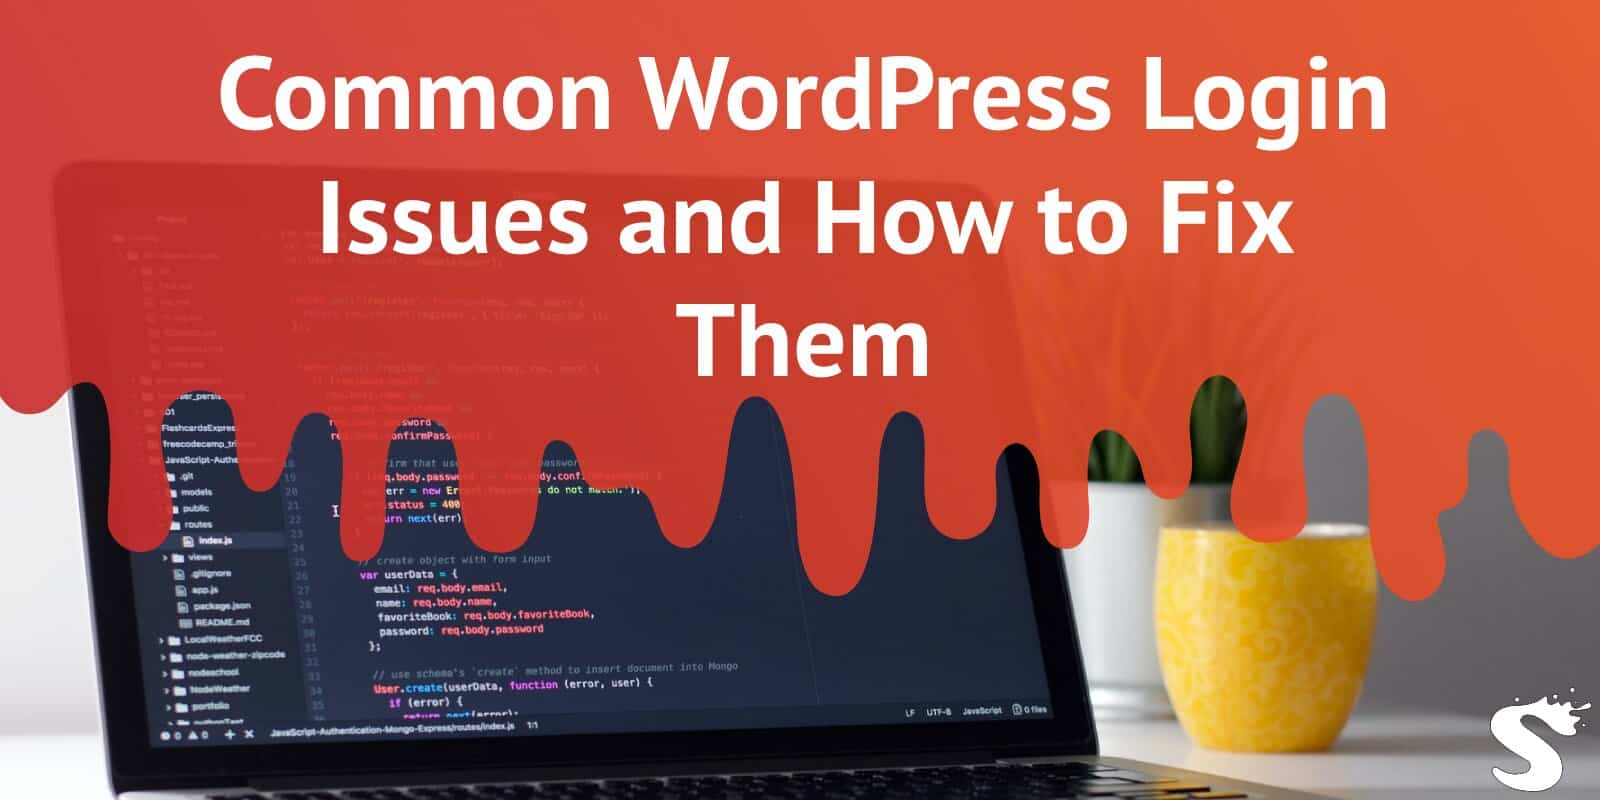 Common WordPress login issues and how to fix them